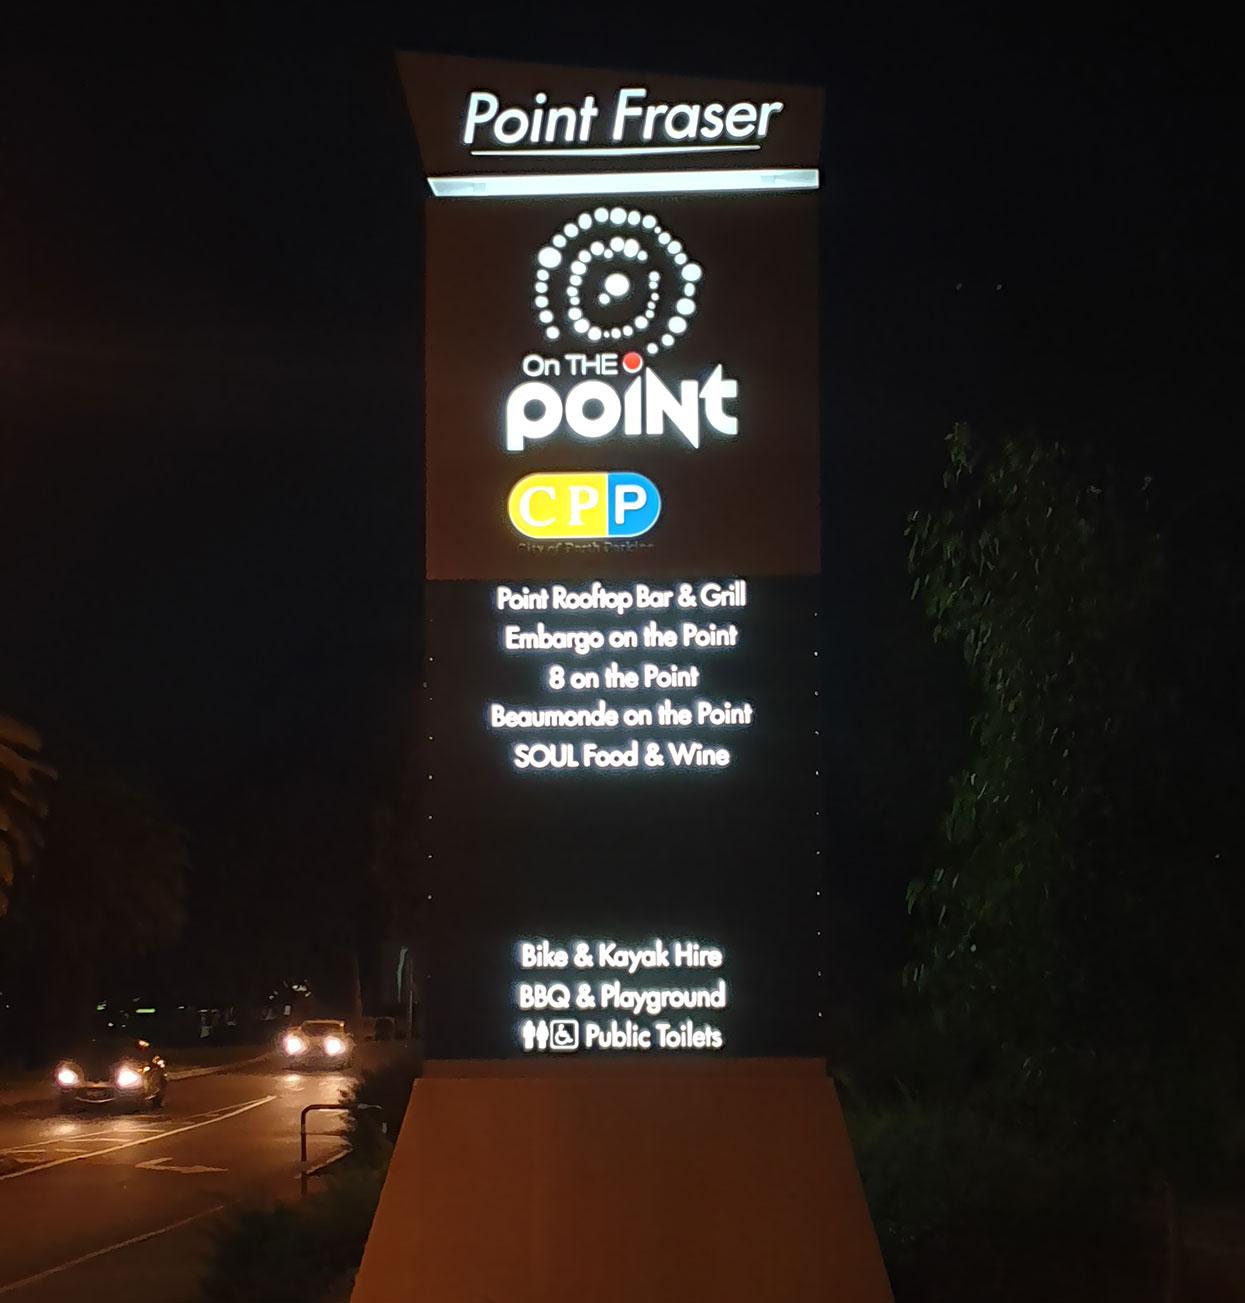 Illuminated signage by Sign Here Signs at Point Fraser, Perth